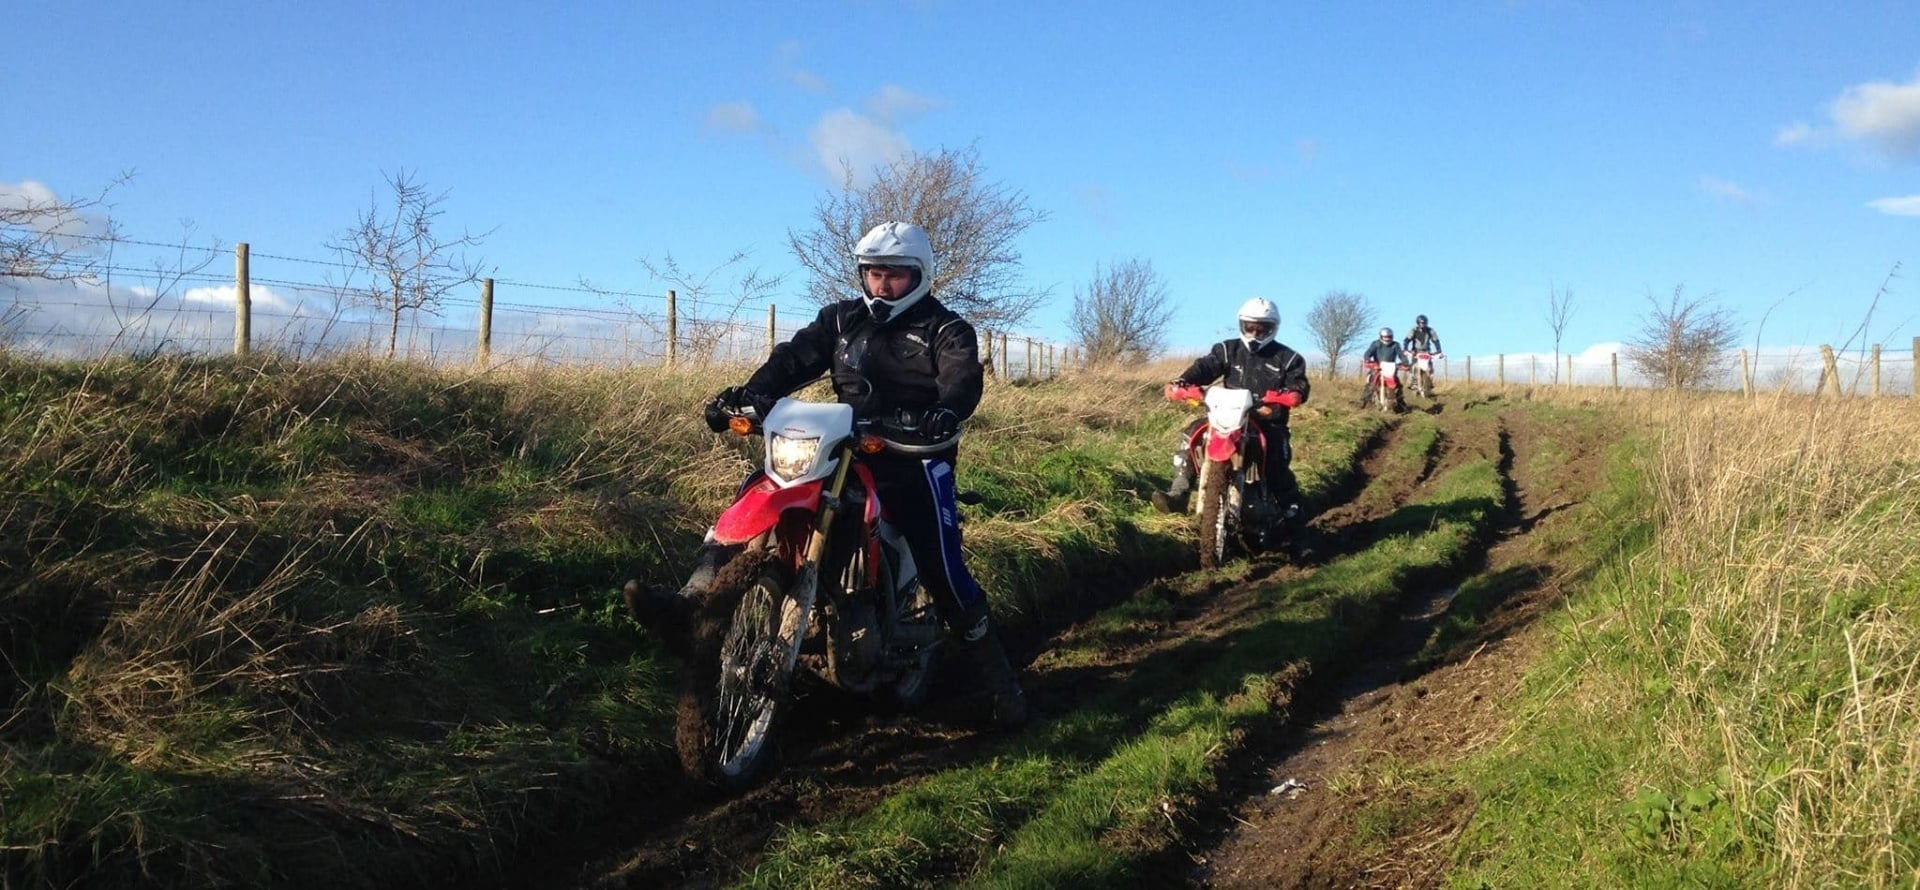 Off Road Biking Introduction Wiltshire-1